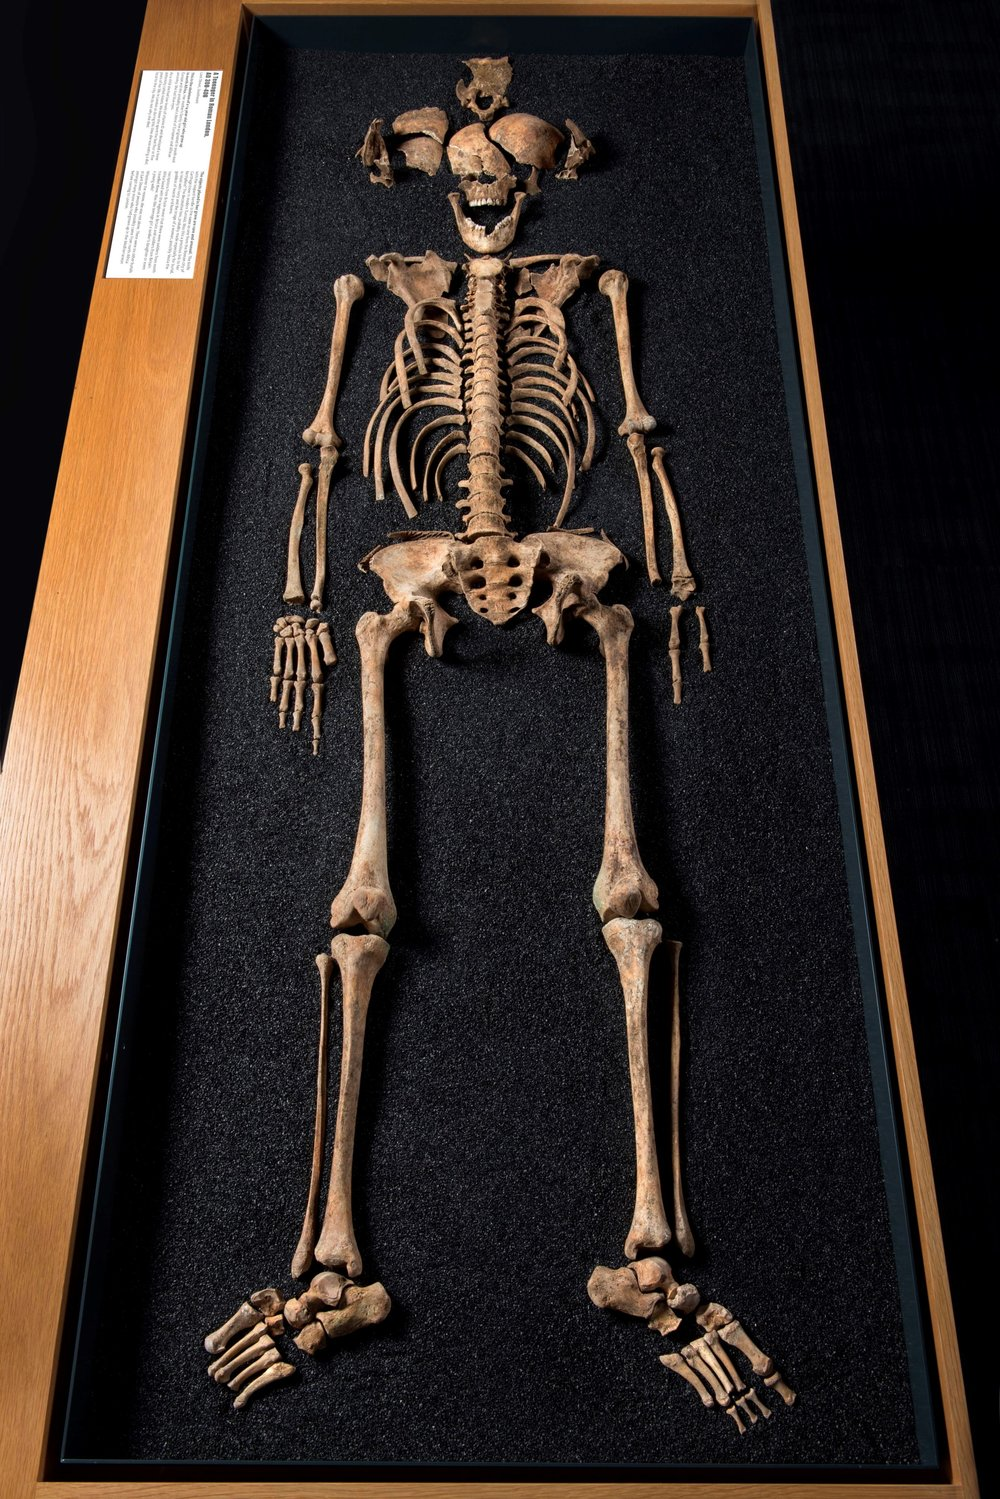 One of the skeletons unearthed in the Roman-era London cemetery.